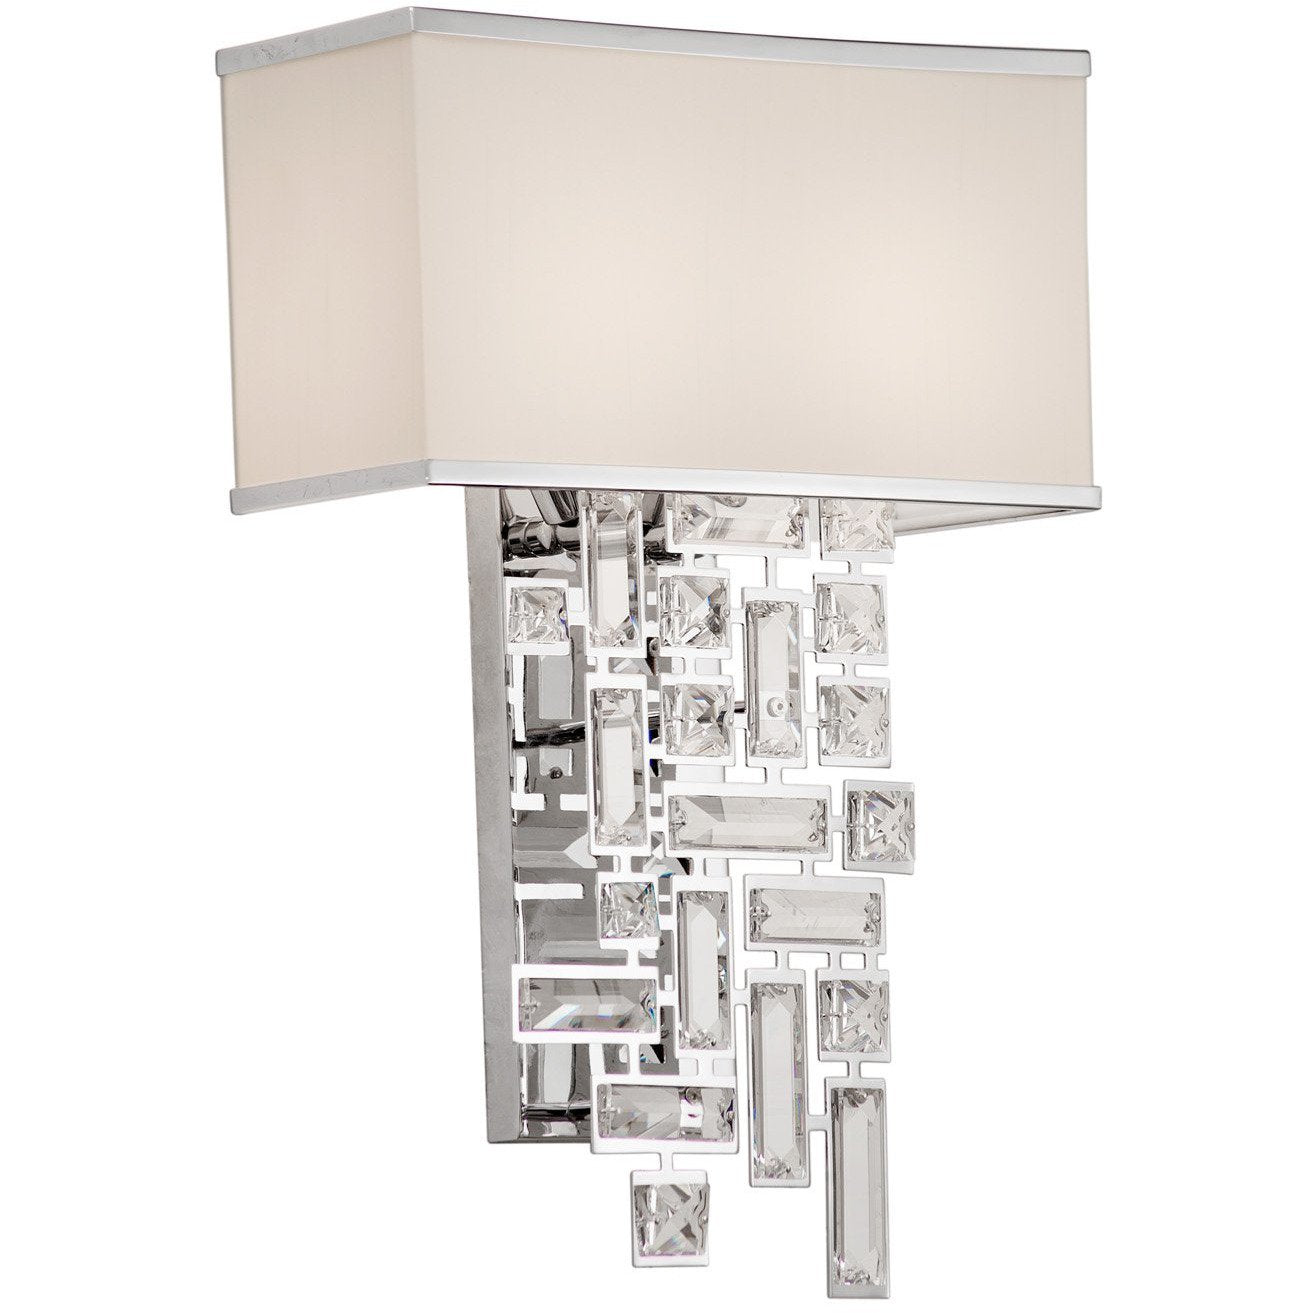 Allegri by Kalco Lighting Wall Sconces Chrome / Firenze Clear Vermeer 2 Light Wall Bracket From Allegri by Kalco Lighting 11190